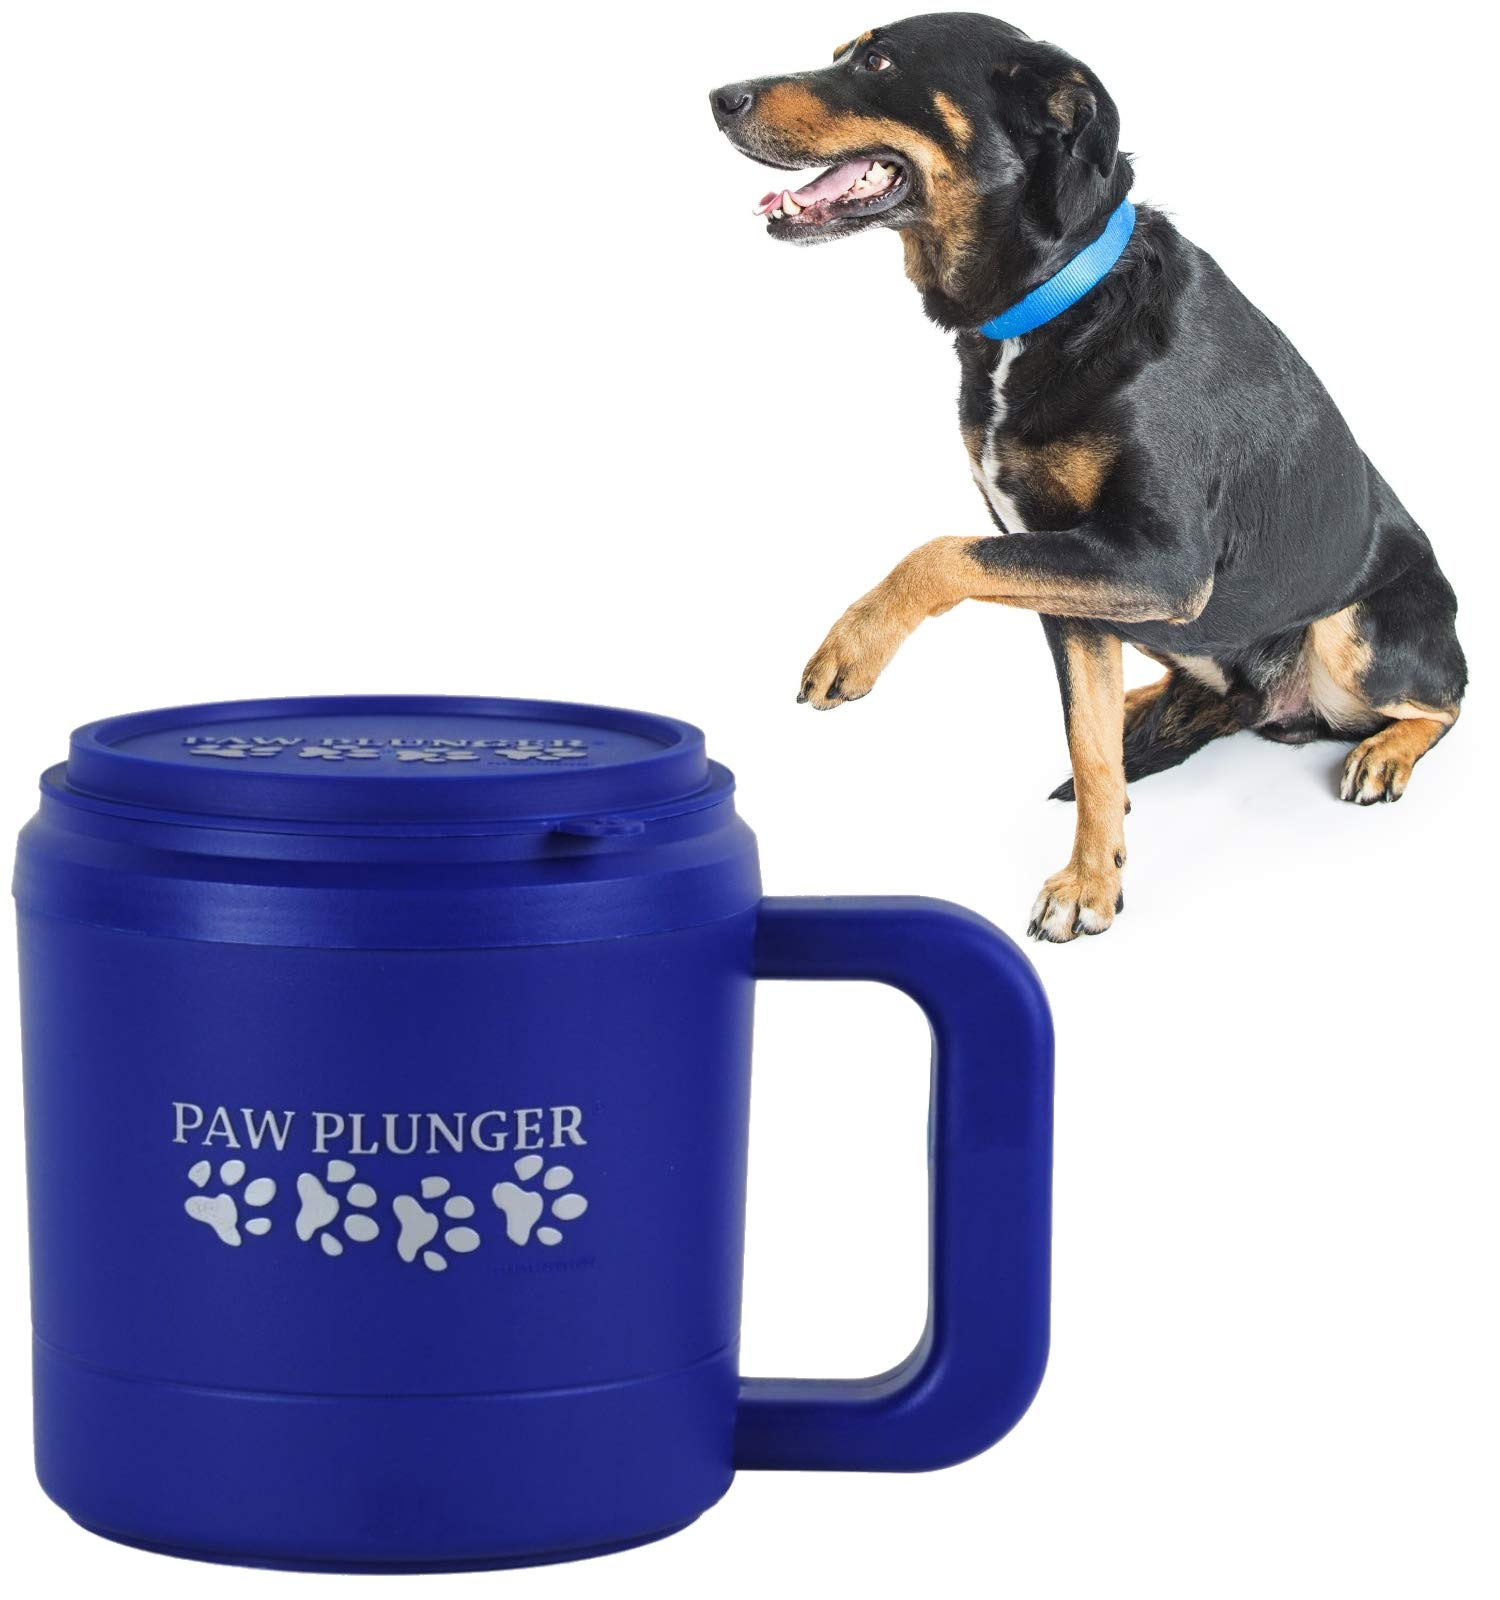 Paw Plunger Dogs Portable Furniture